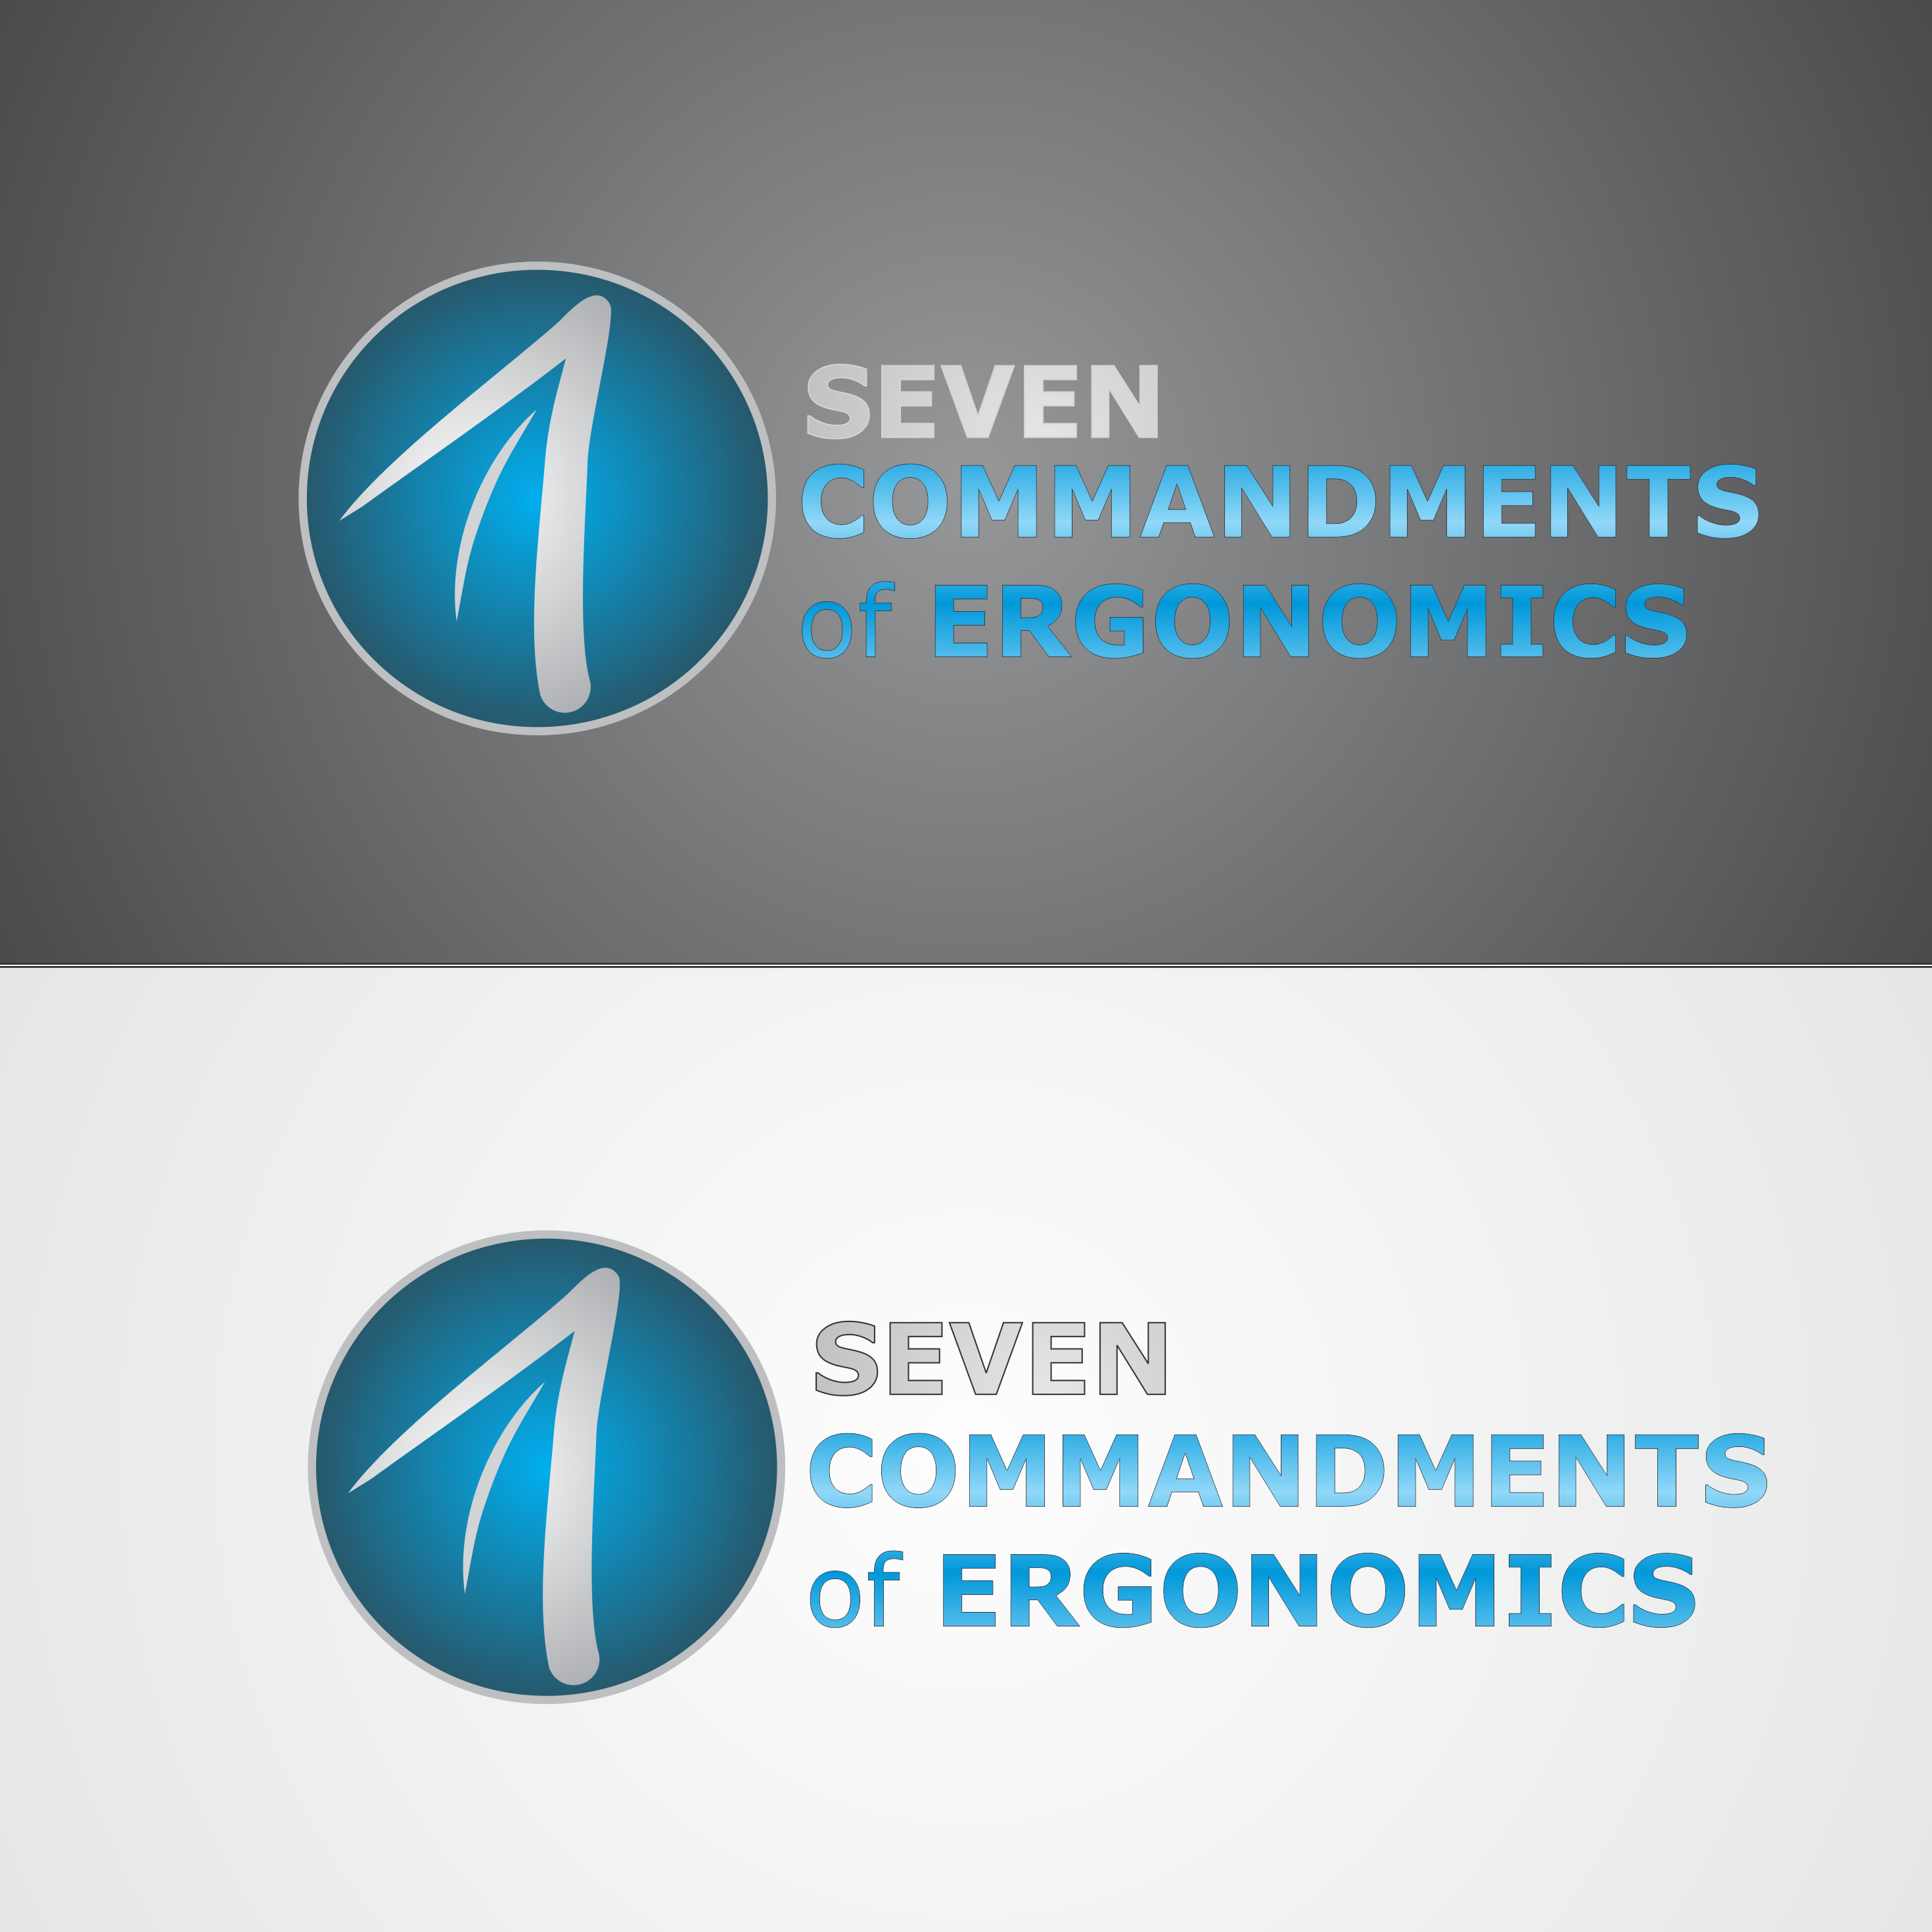 Logo Design by robbiemack - Entry No. 96 in the Logo Design Contest Logo Design for Seven Commandments of Ergonomics.